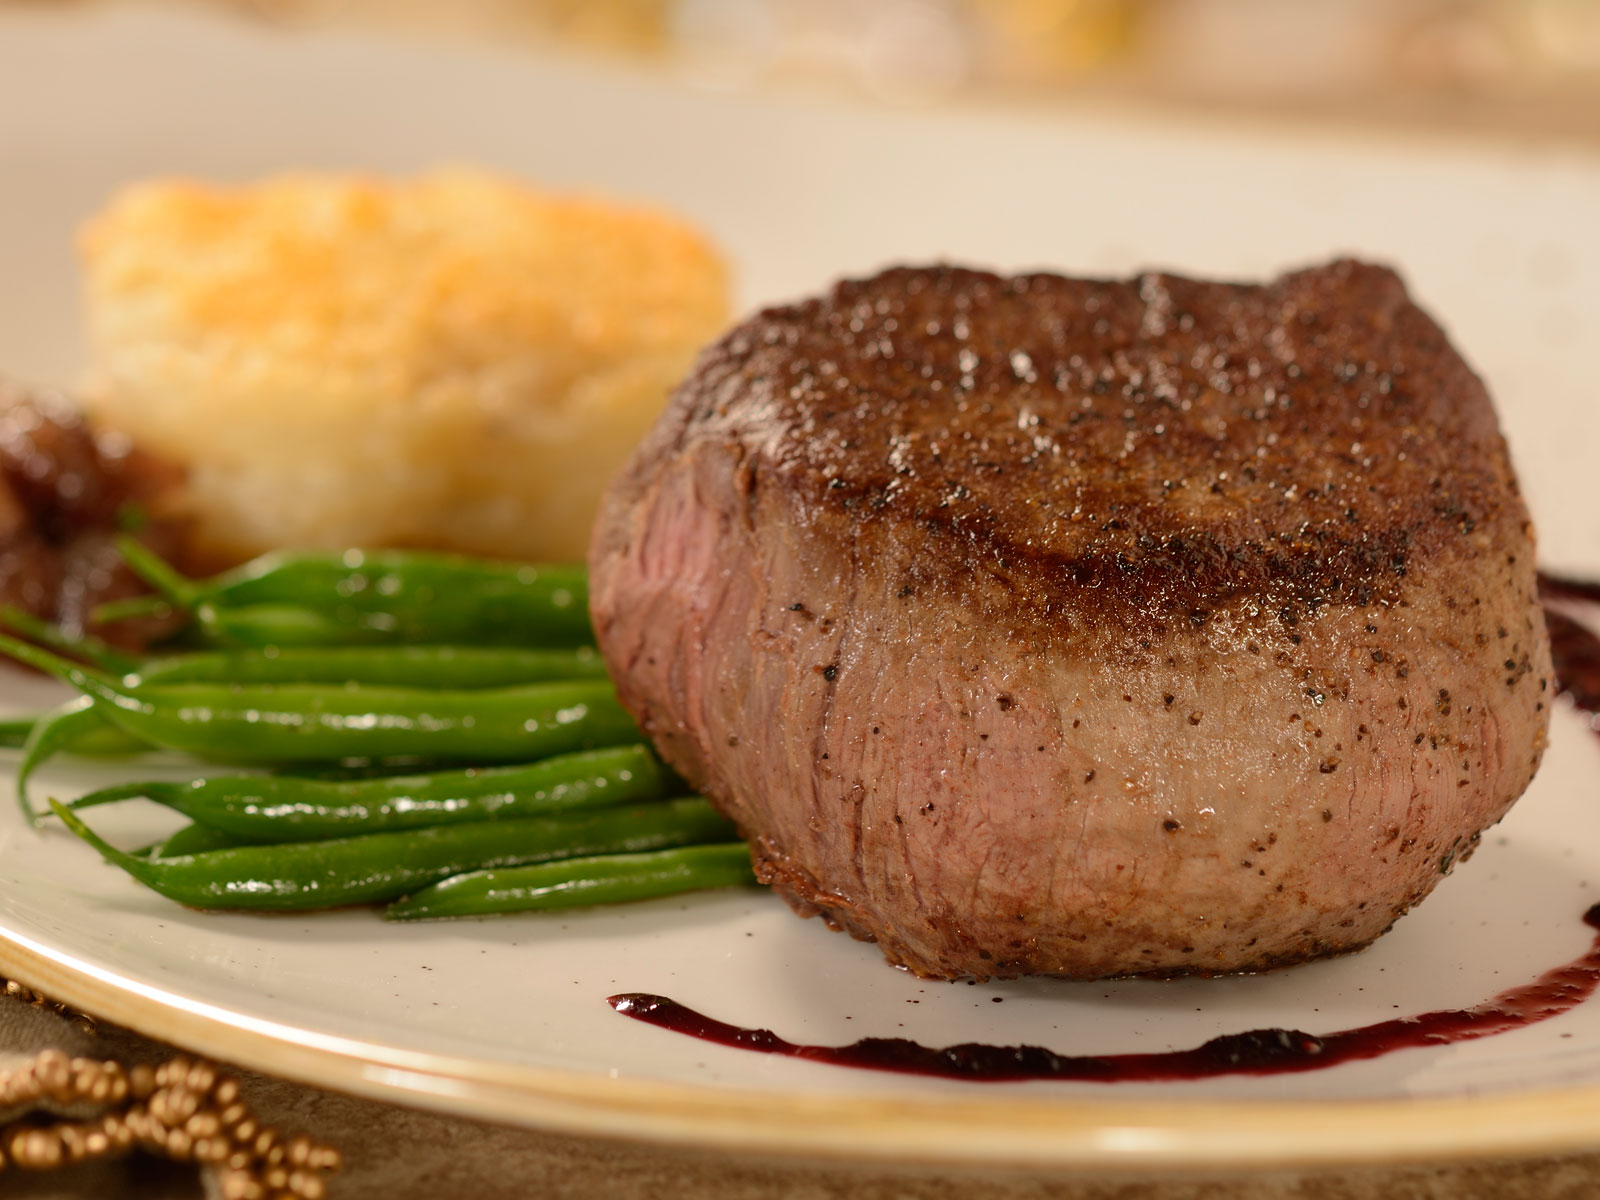 disneyworld-be-our-guest-filet-mignon-FT-BLOG0218.jpg